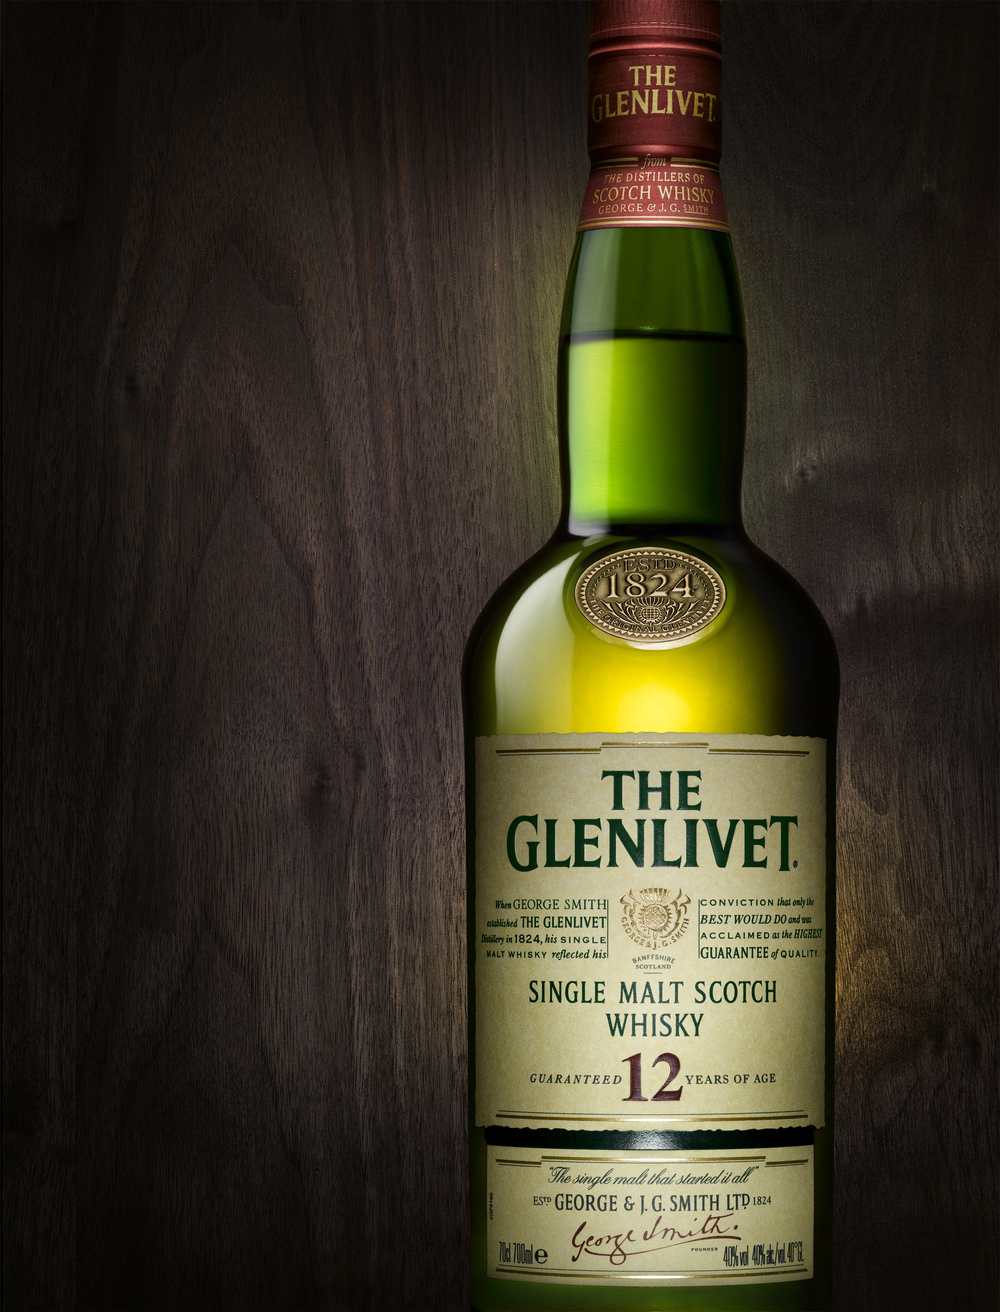 Glenlivet; Ogilvy London